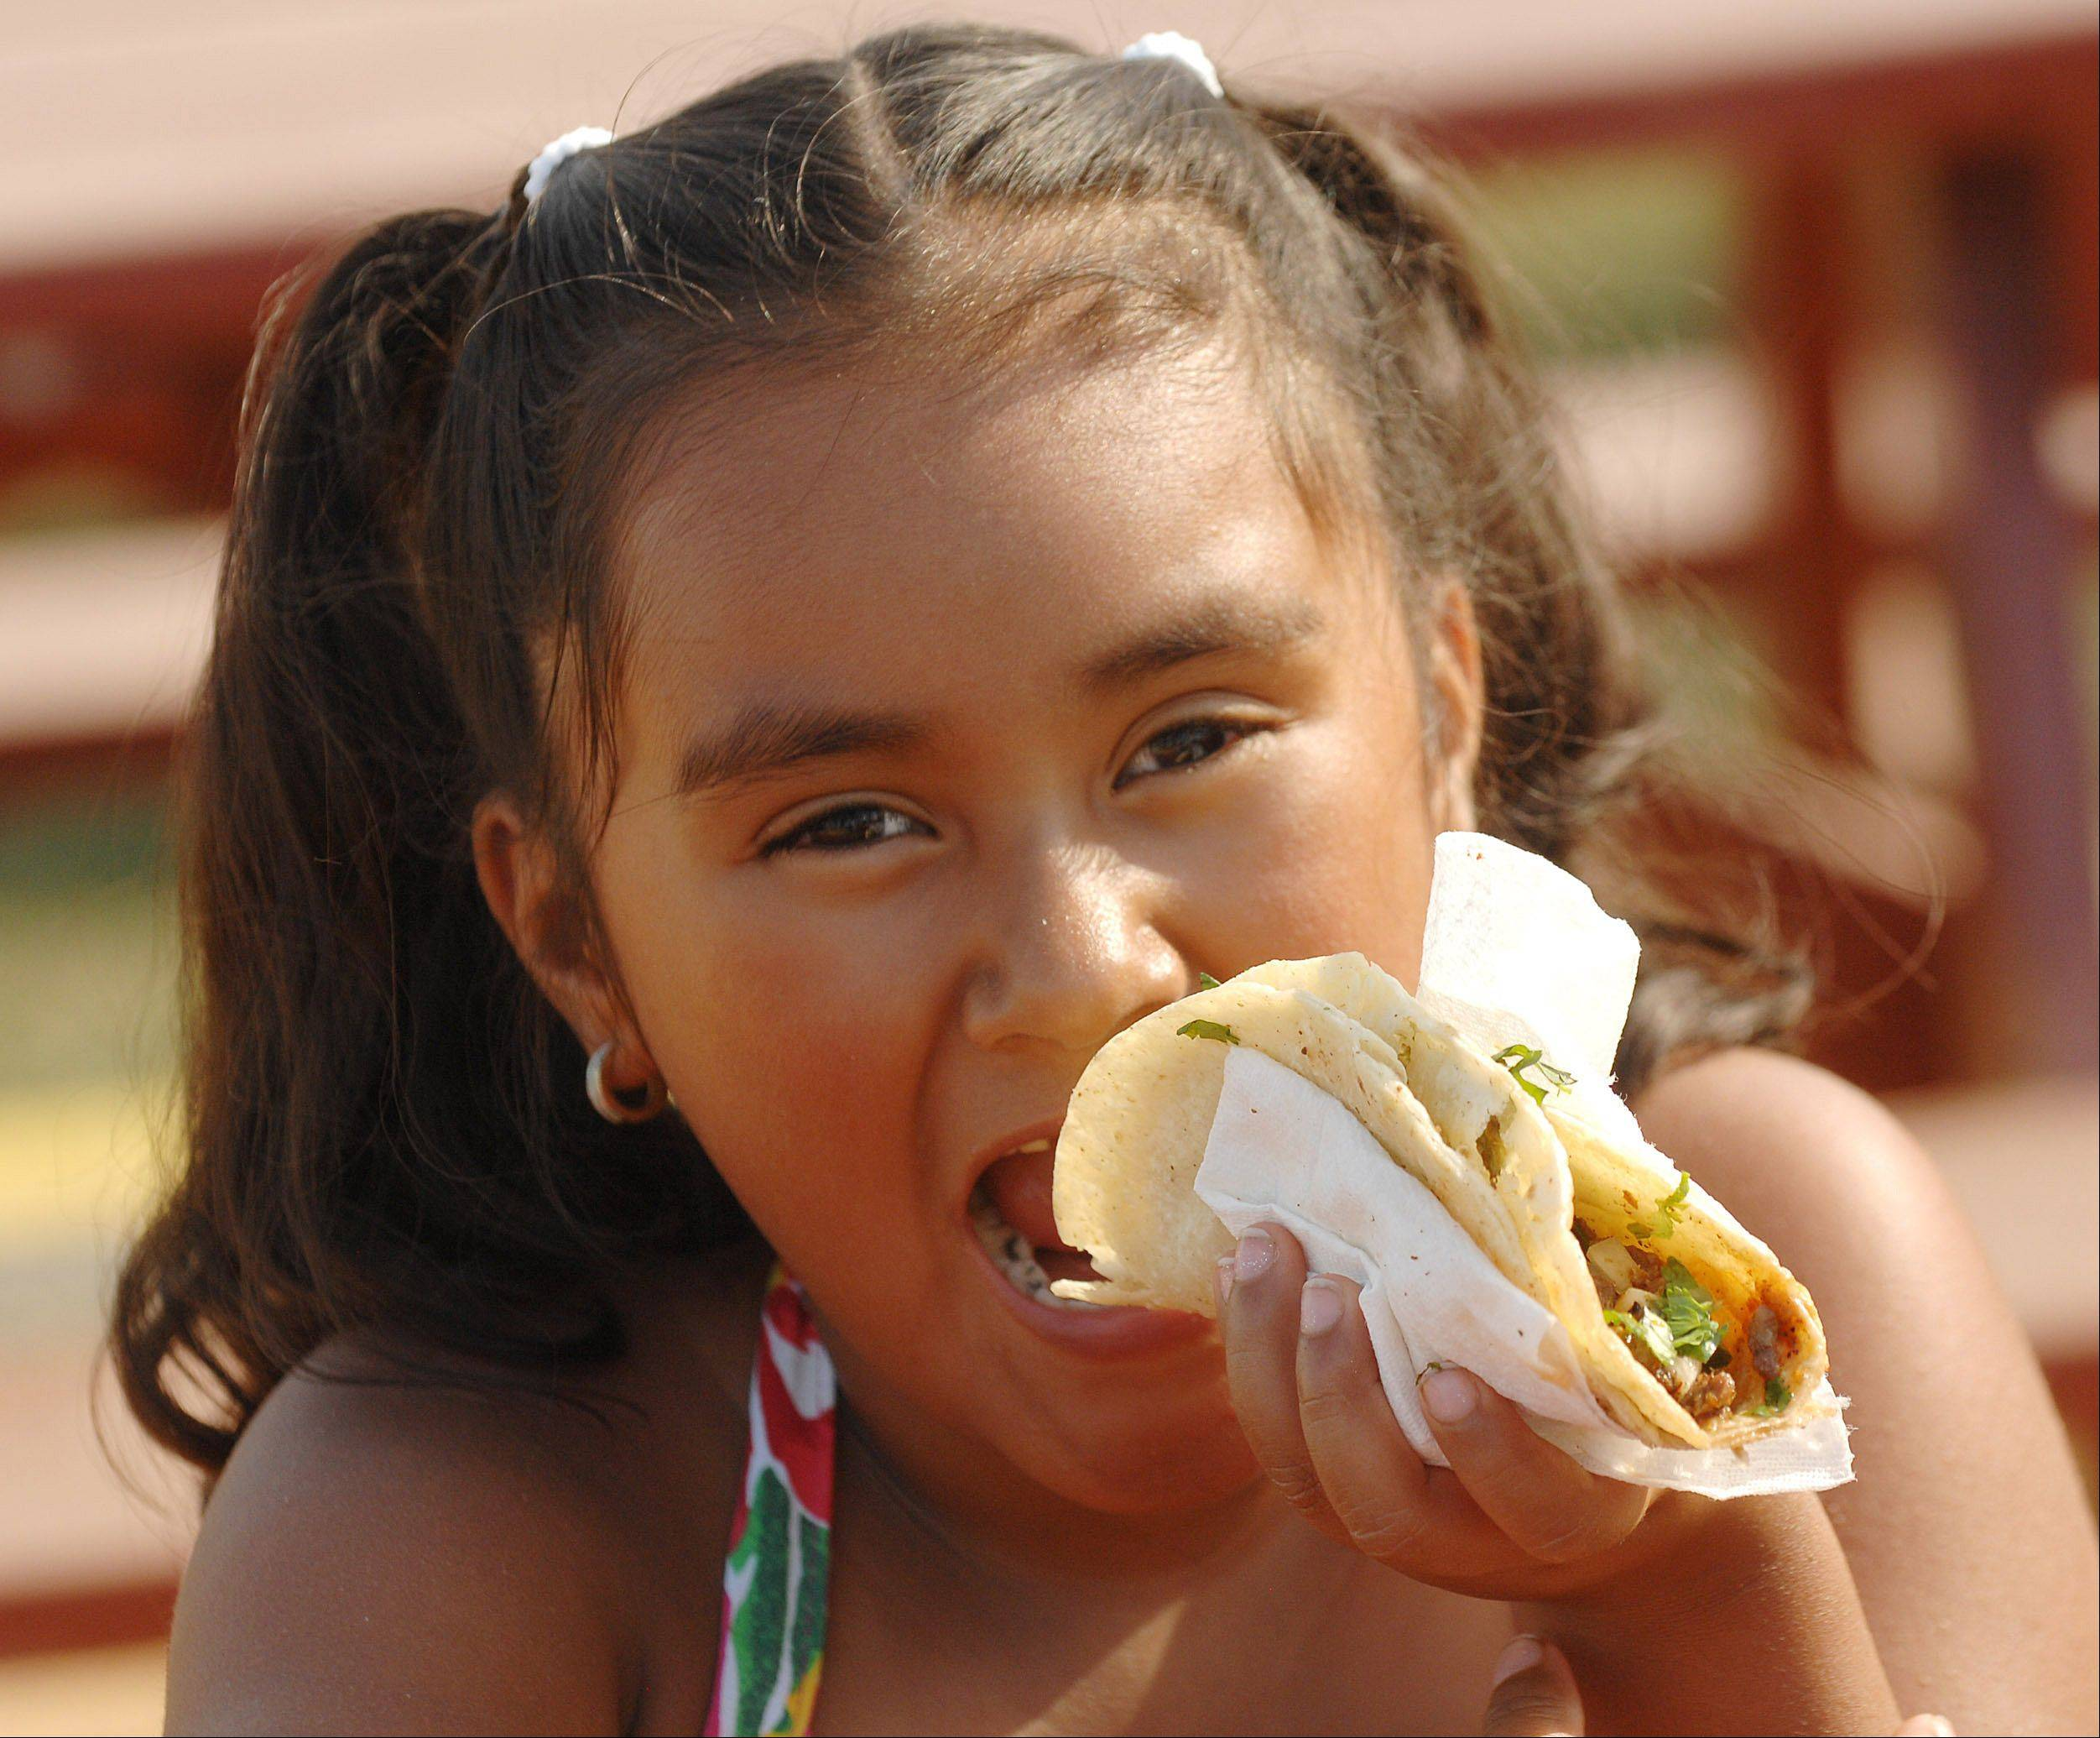 Fabiola Cruz, 6, of West Chicago enjoys a taco during Railroad Days in West Chicago Thursday. Today was the first day of this fest that runs through the weekend. The fest offers food games and fun for all ages.